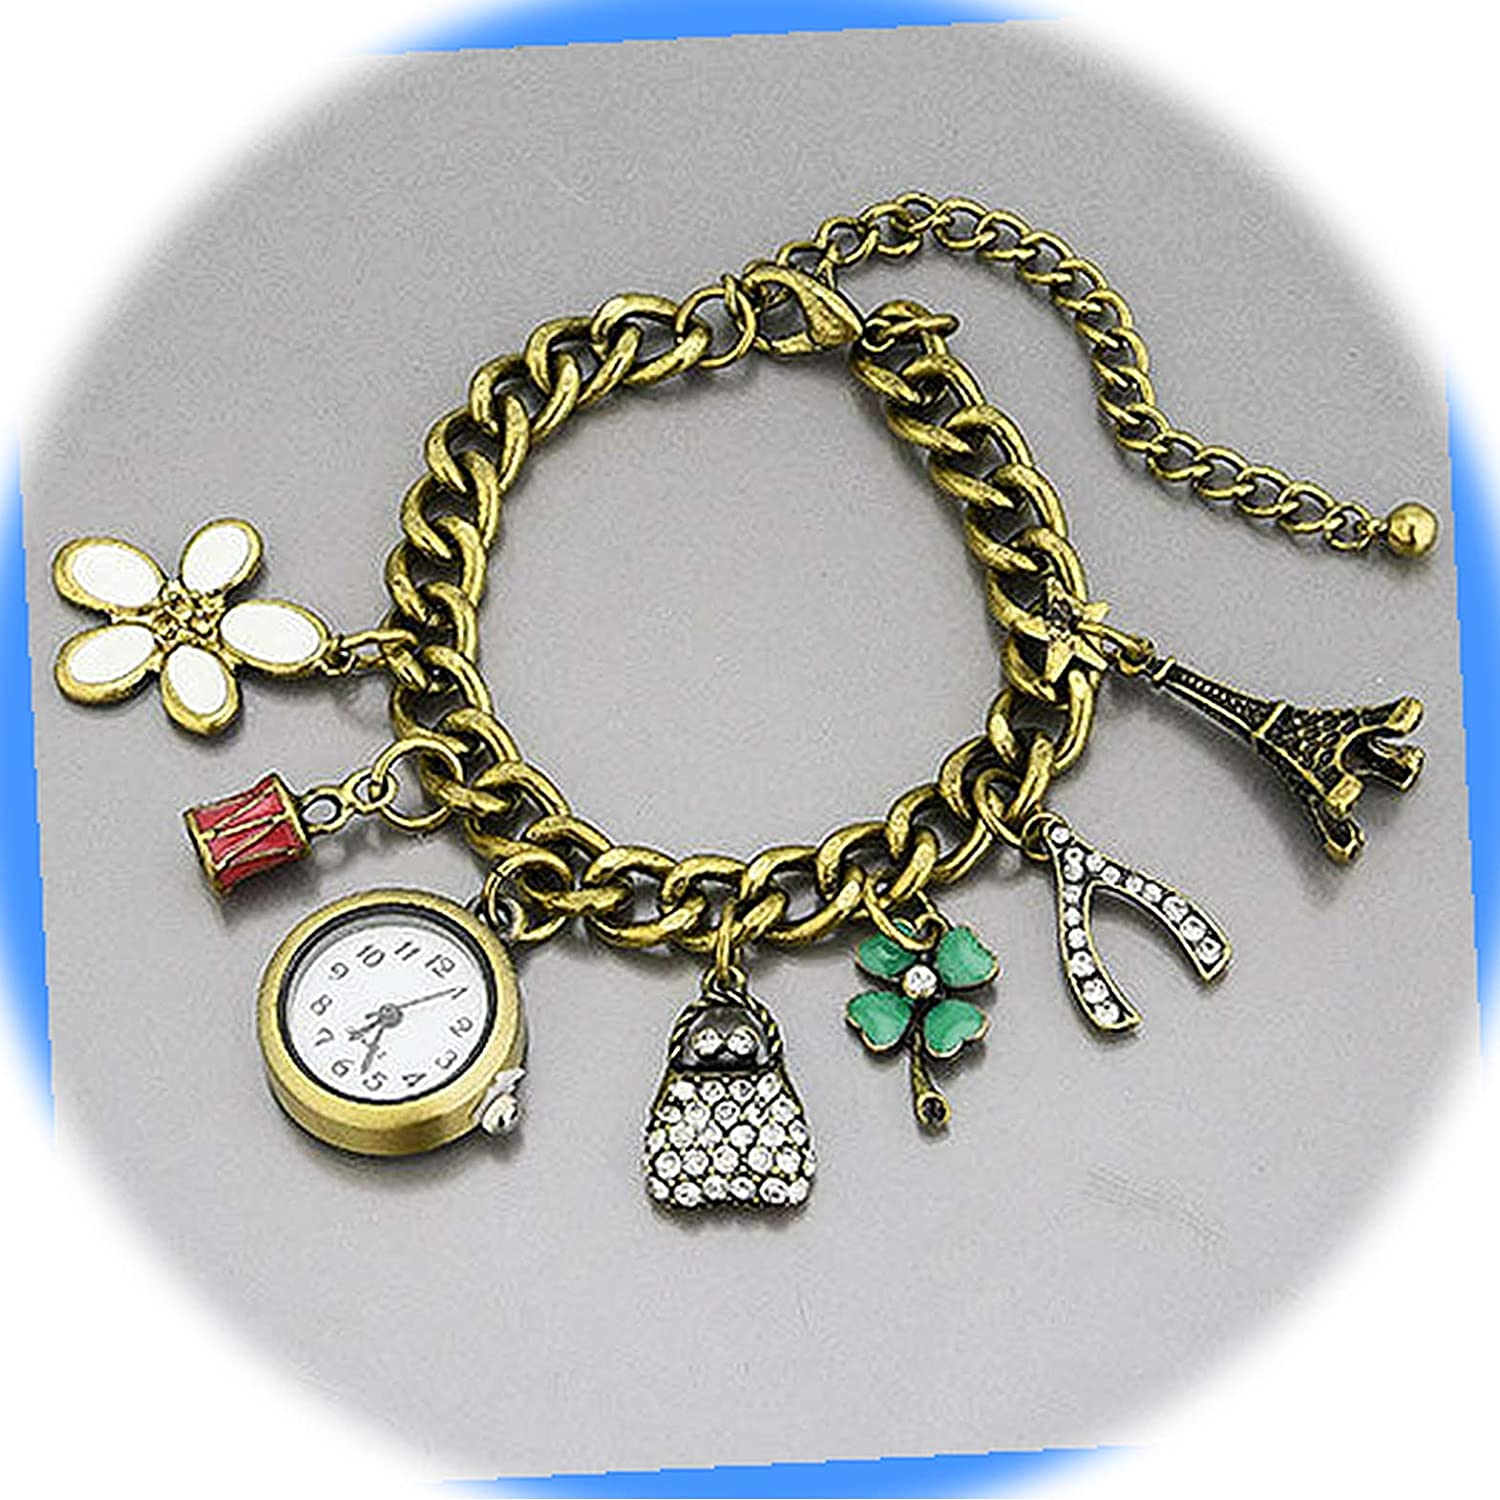 New Genuine Antique Gold Tone Color Chain Clover Four Flower Watch Max 65% OFF Leaf